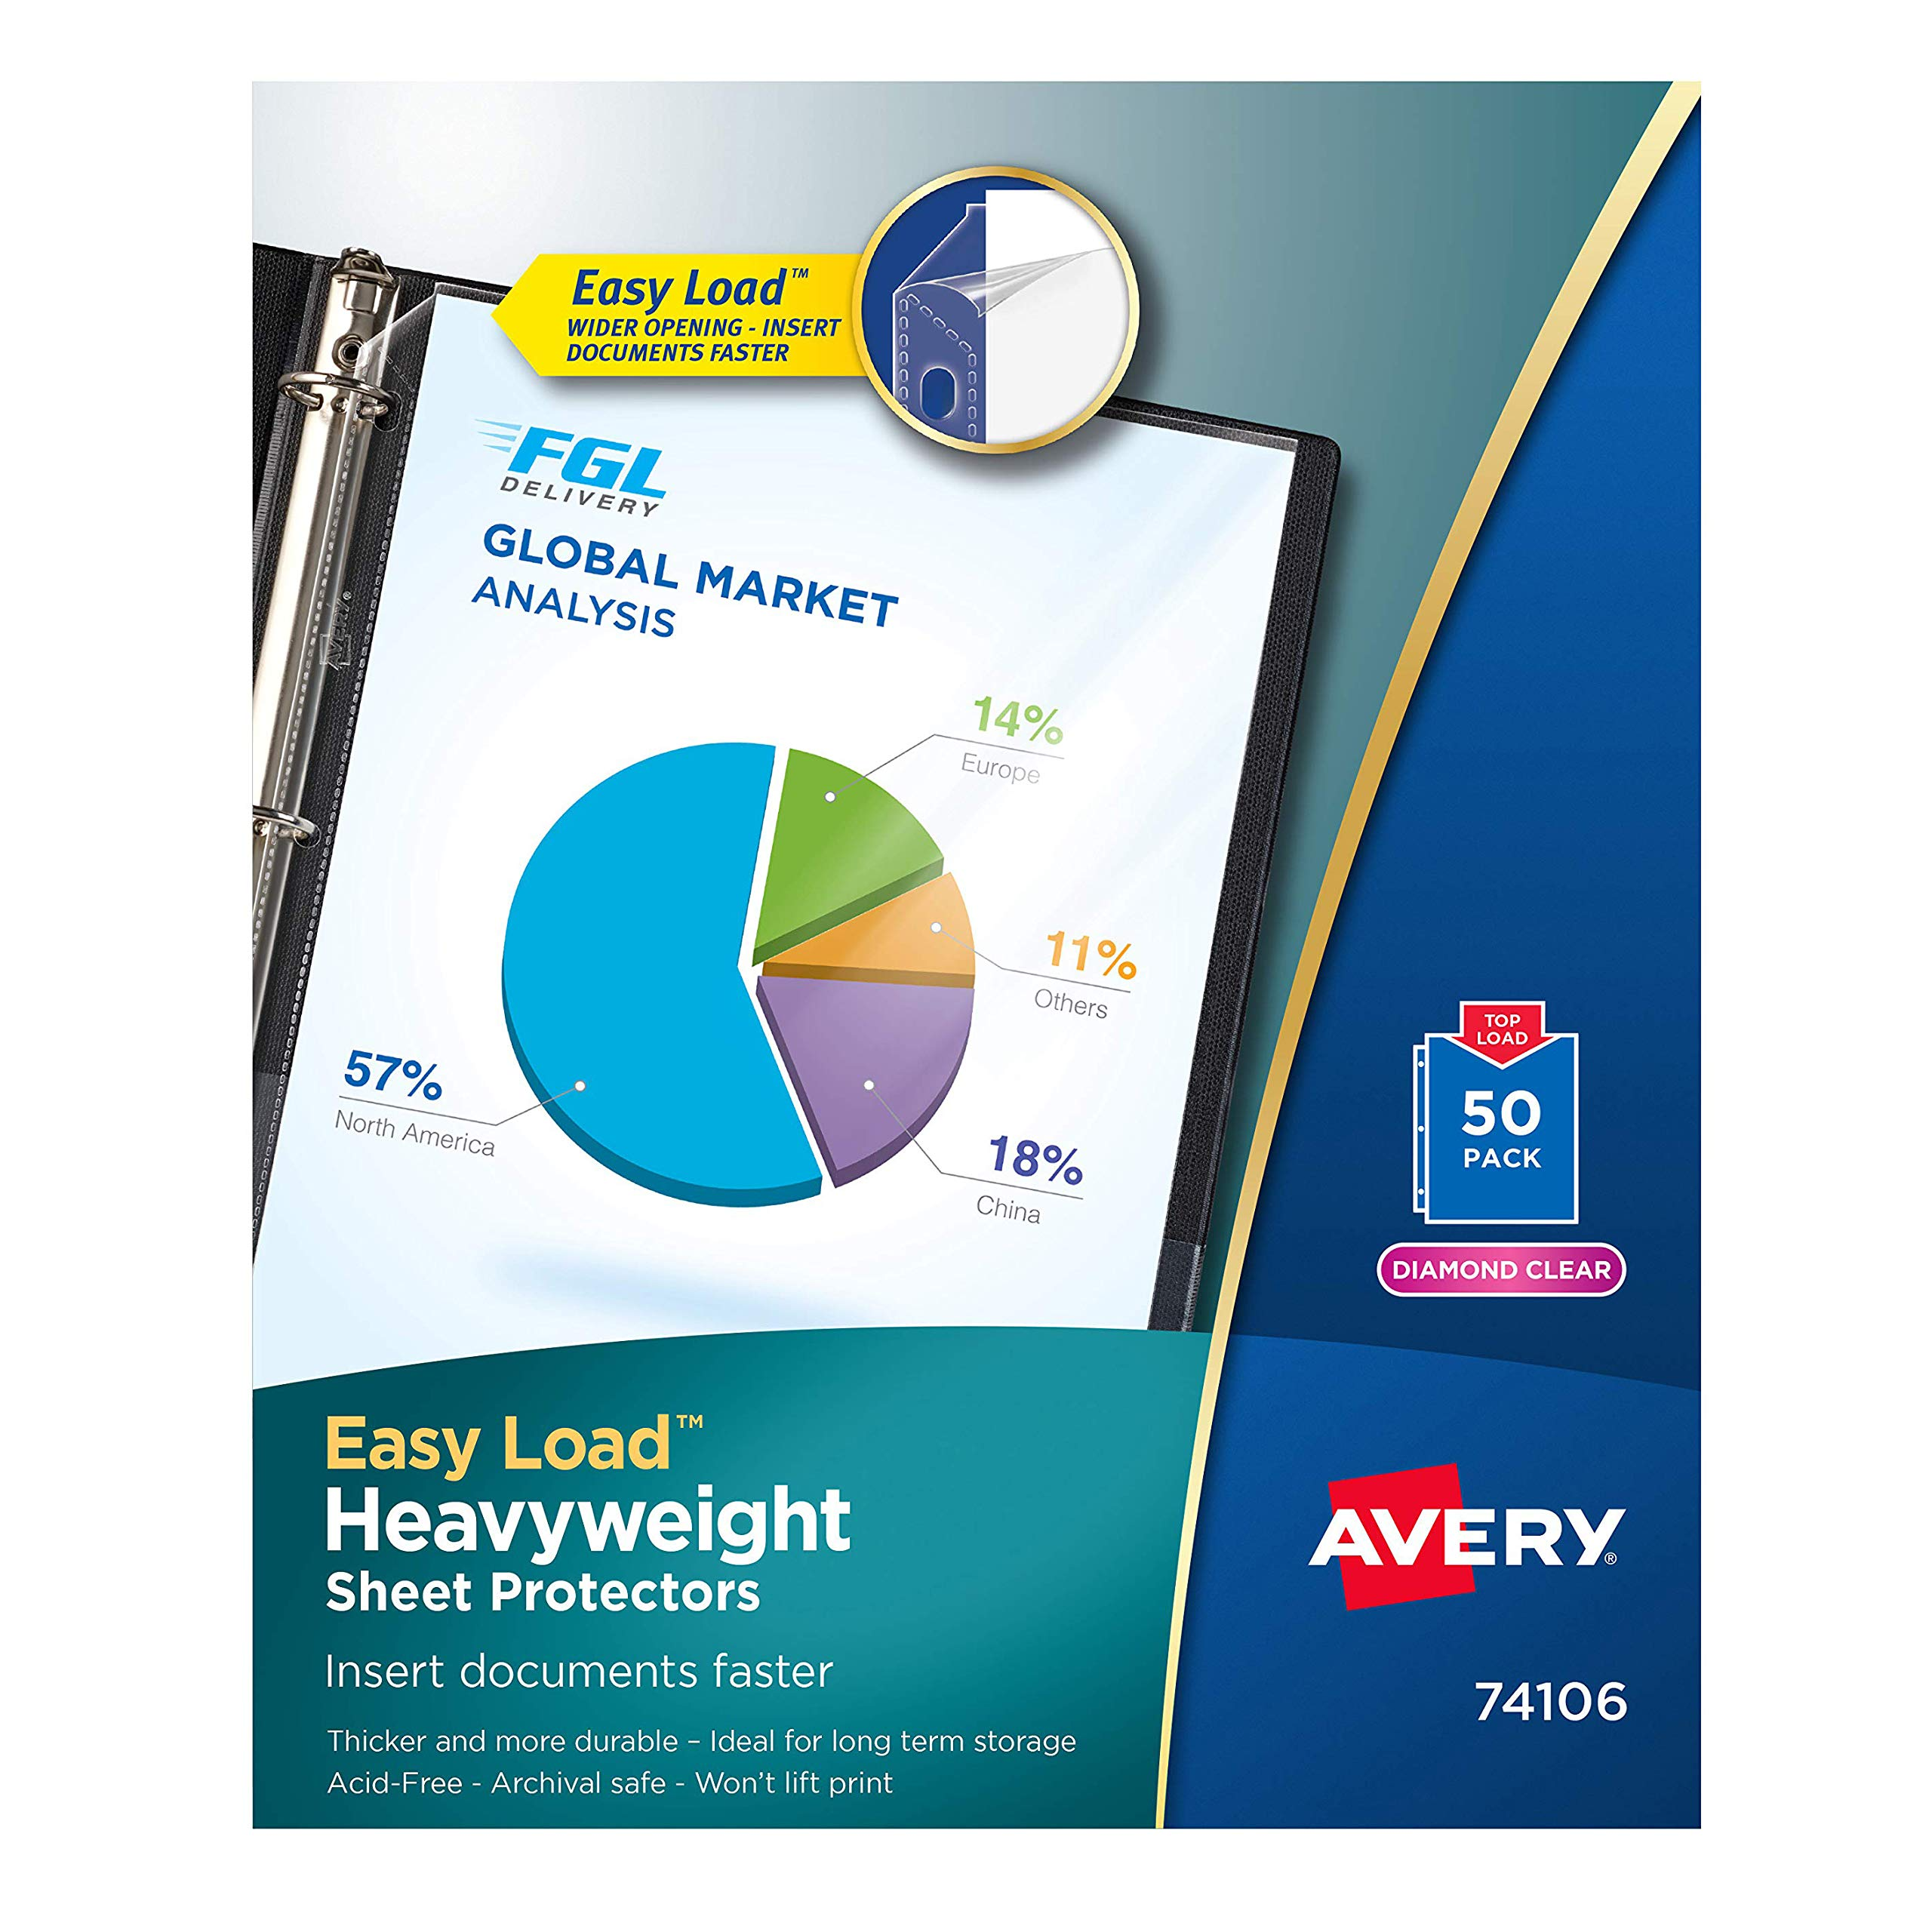 AUSAYE 100Pack Plastic Sheet Protectors 8.5 x 11 Inch No-Glare Heavyweight Page Protectors Archival Safe 3-Hole Design for Top Load for 8.5 x 11 Inch Sheets